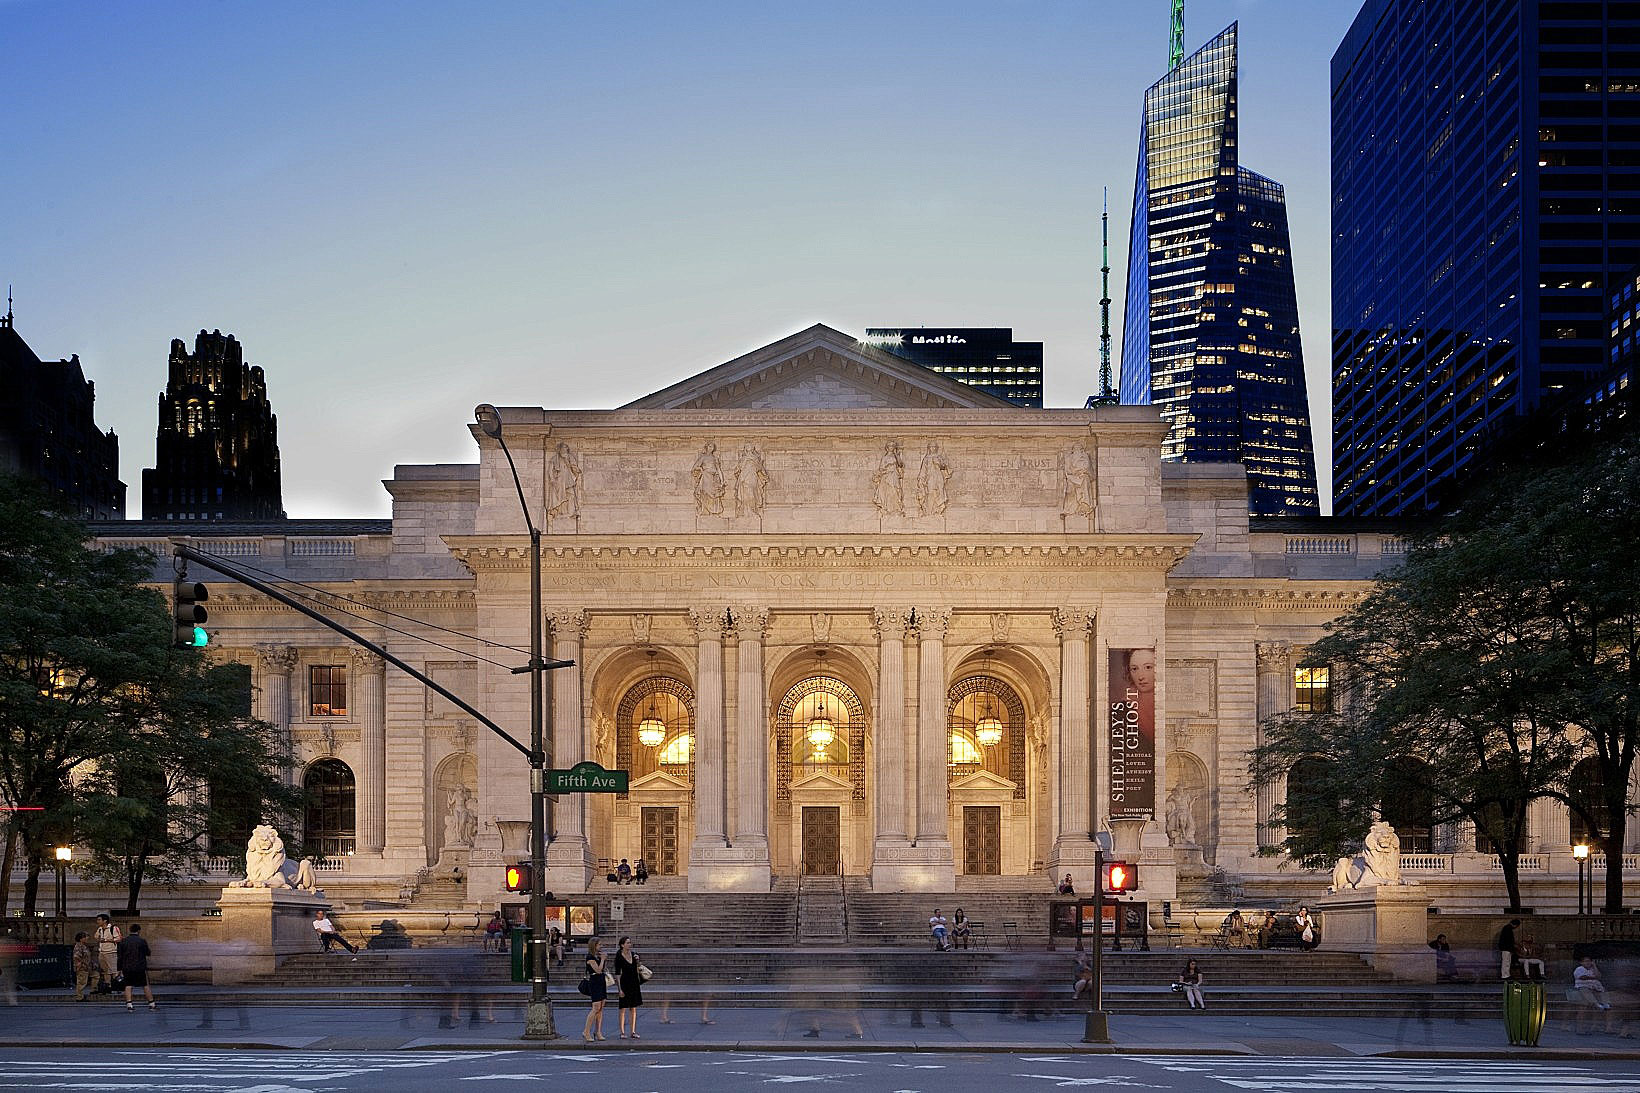 Beamer gross  eur erco new york public library stephen a schwarzman building image 1 8